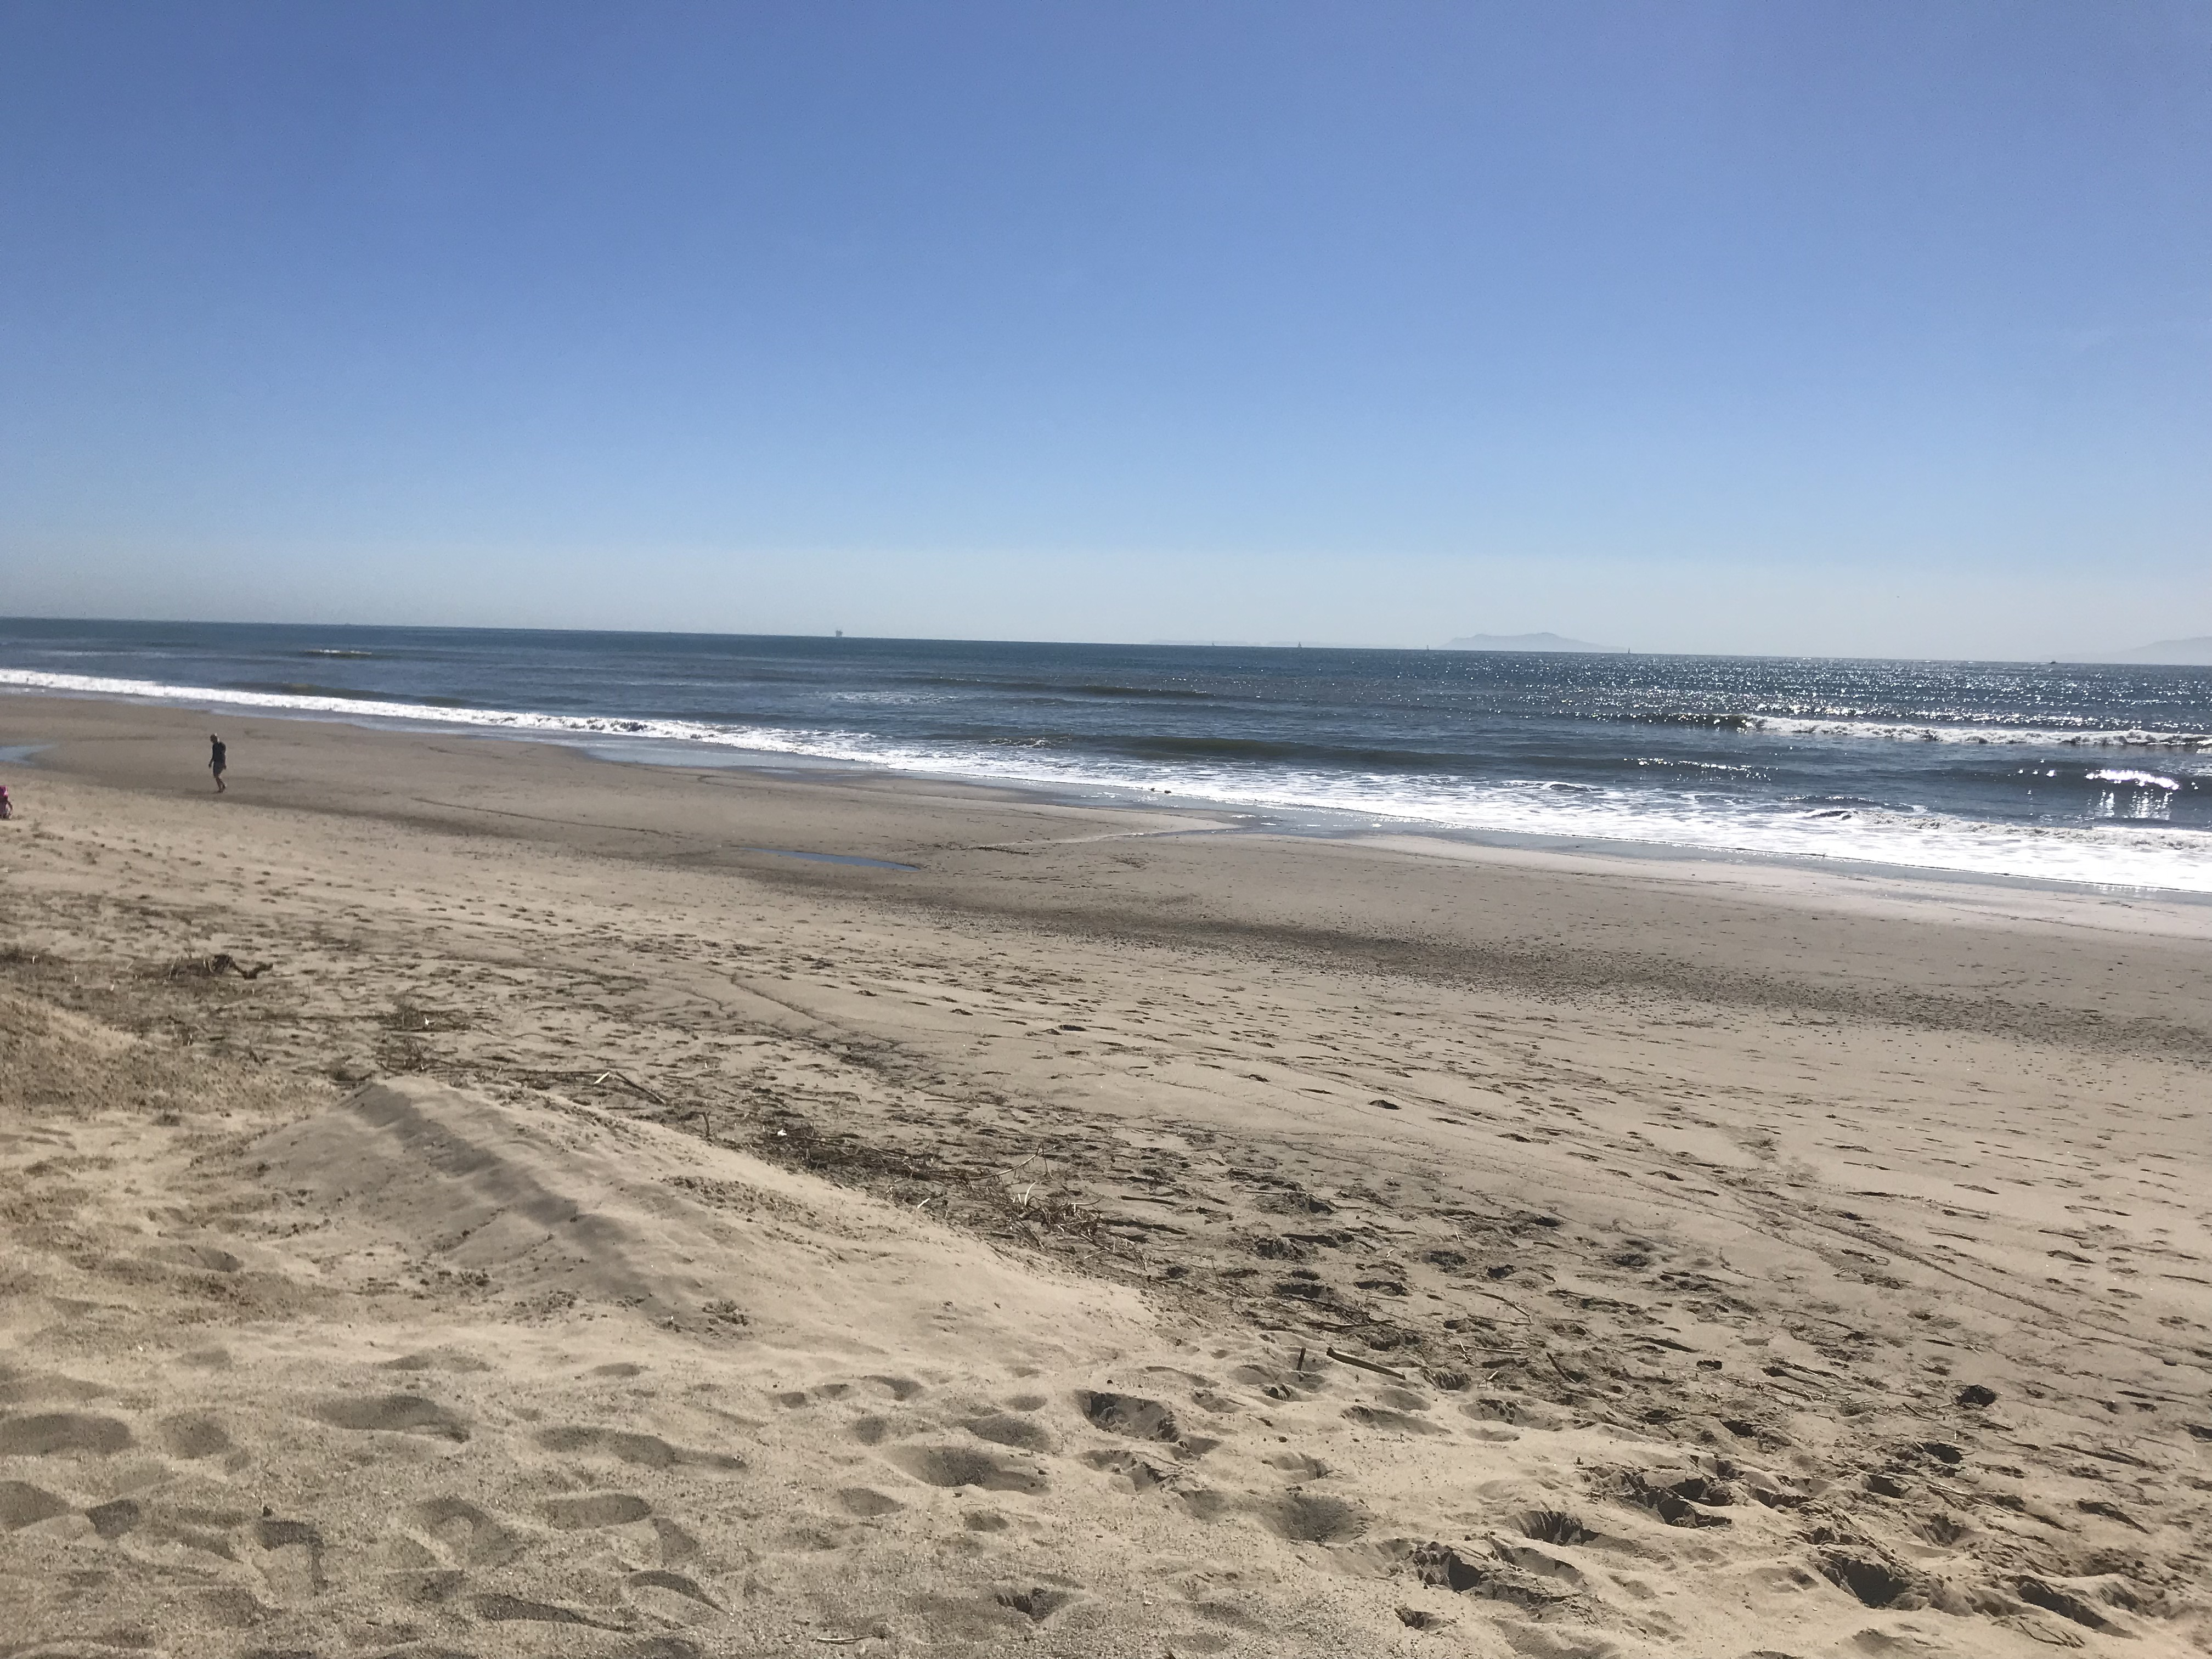 I Went To A Beach In Oxnard Called State Park Don T Usually Go The Alone But Had Make An Exception Today Because All My